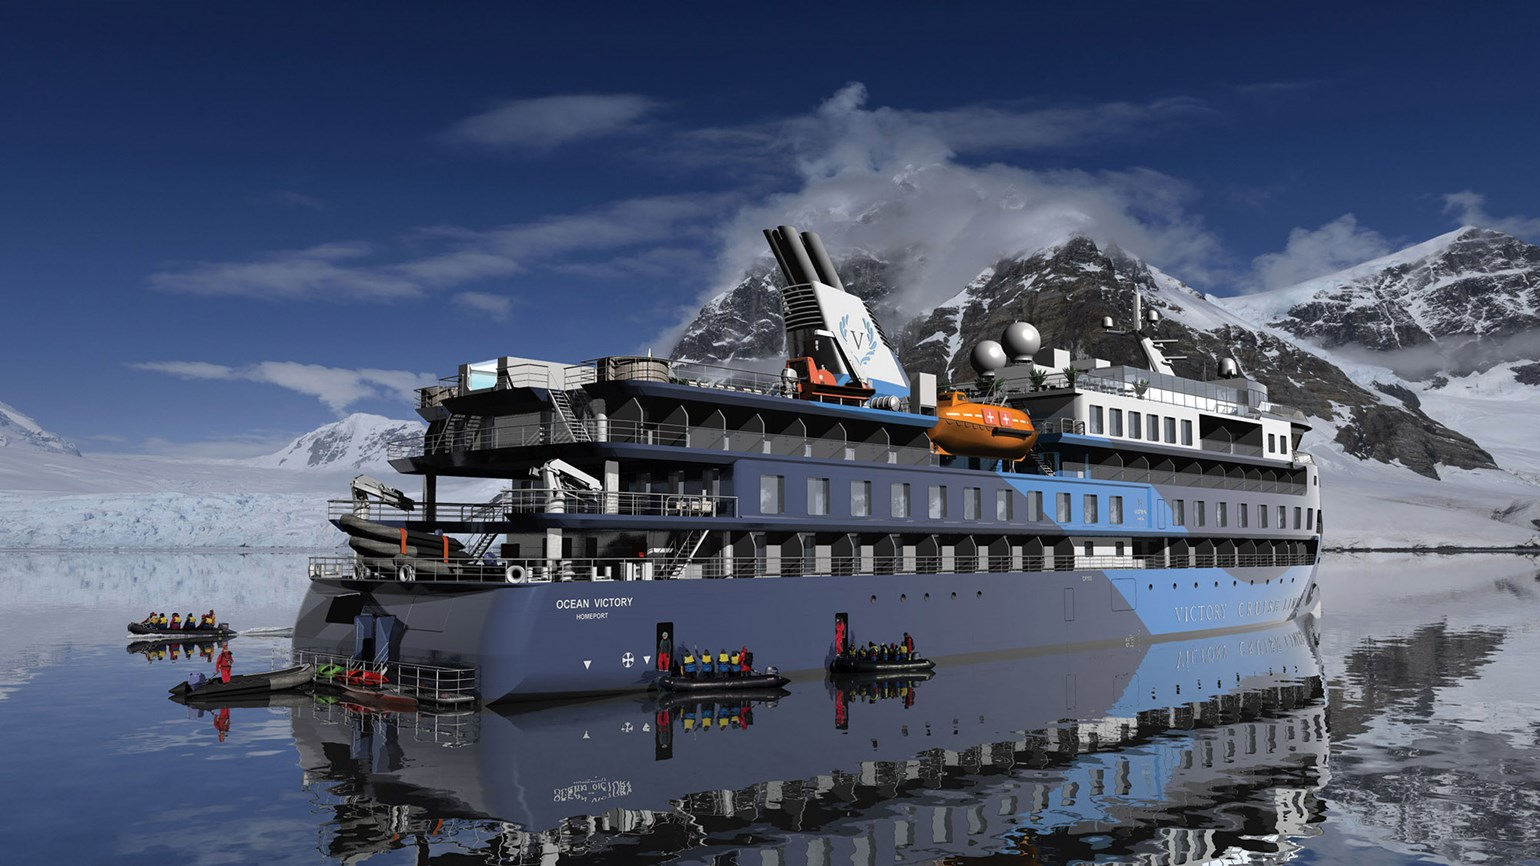 Victory Cruises postpones the debut of its expedition ship to 2022